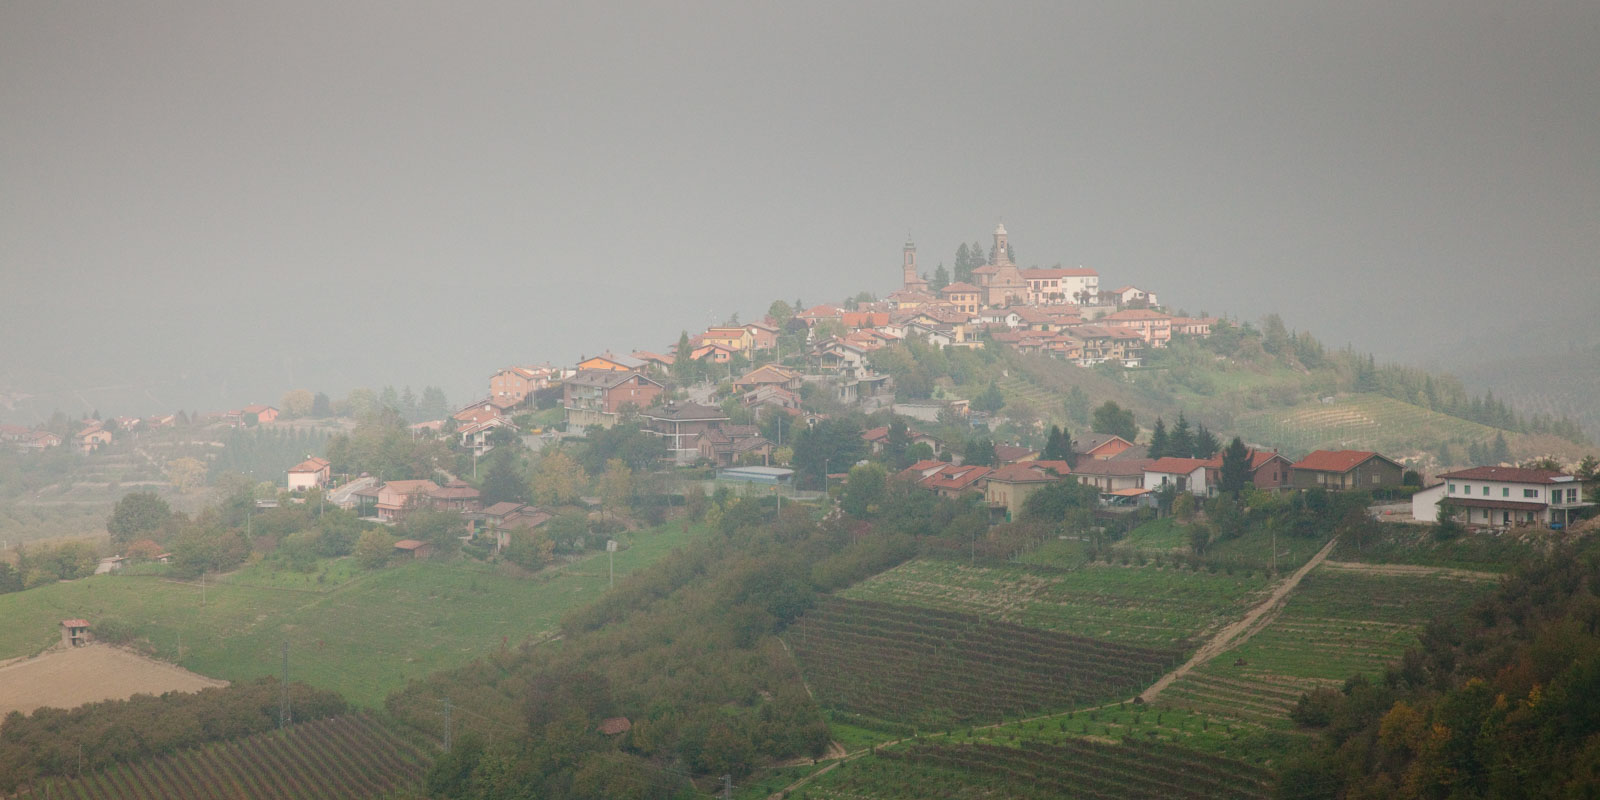 The village of Rodello on the lower slopes of the Langhe Hills. ©Kevin Day/Opening a Bottle